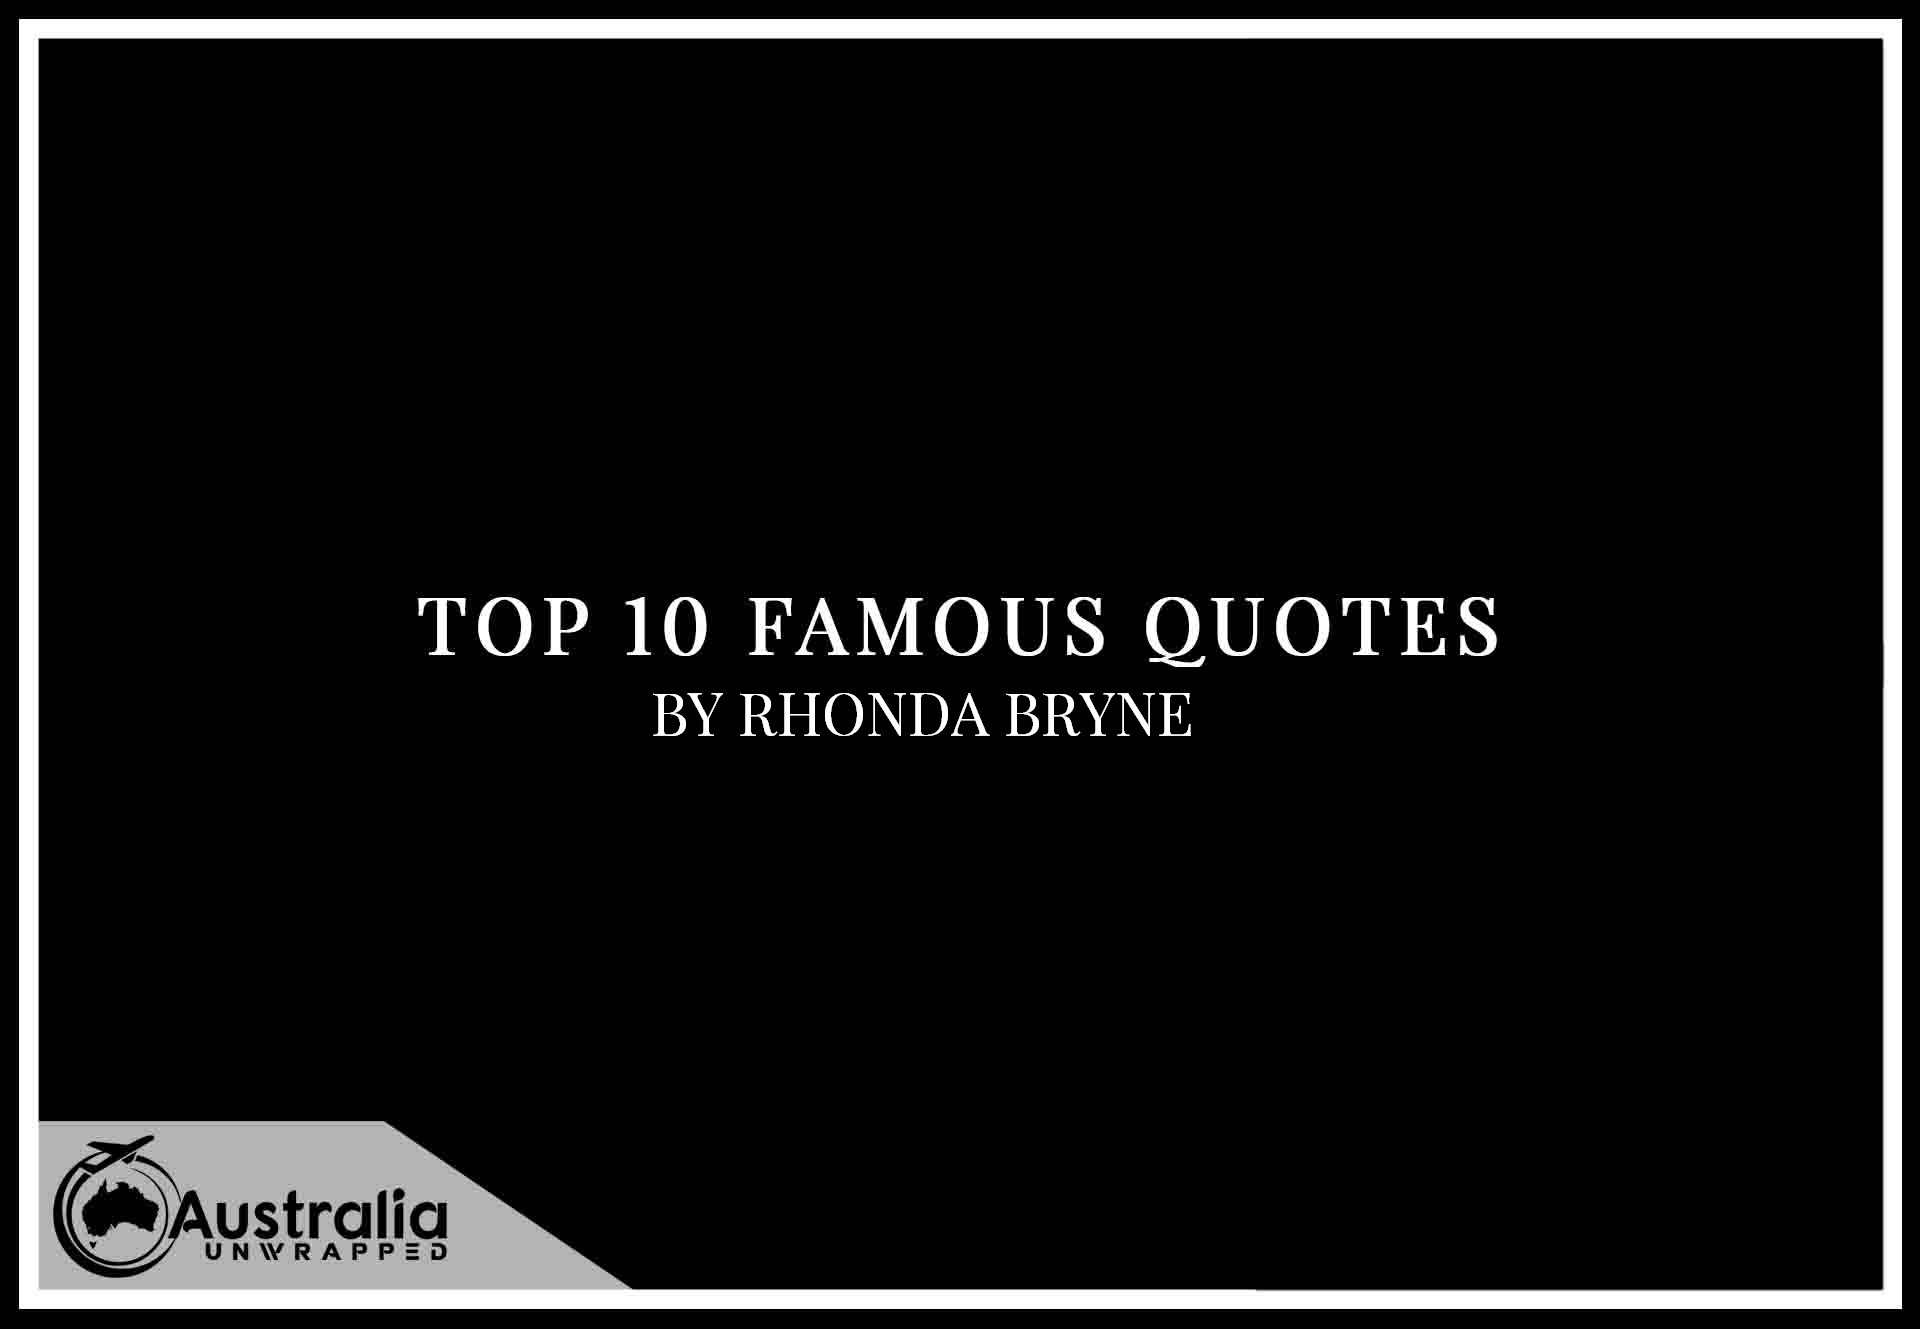 Top 10 Famous Quotes by Author Rhonda Byrne